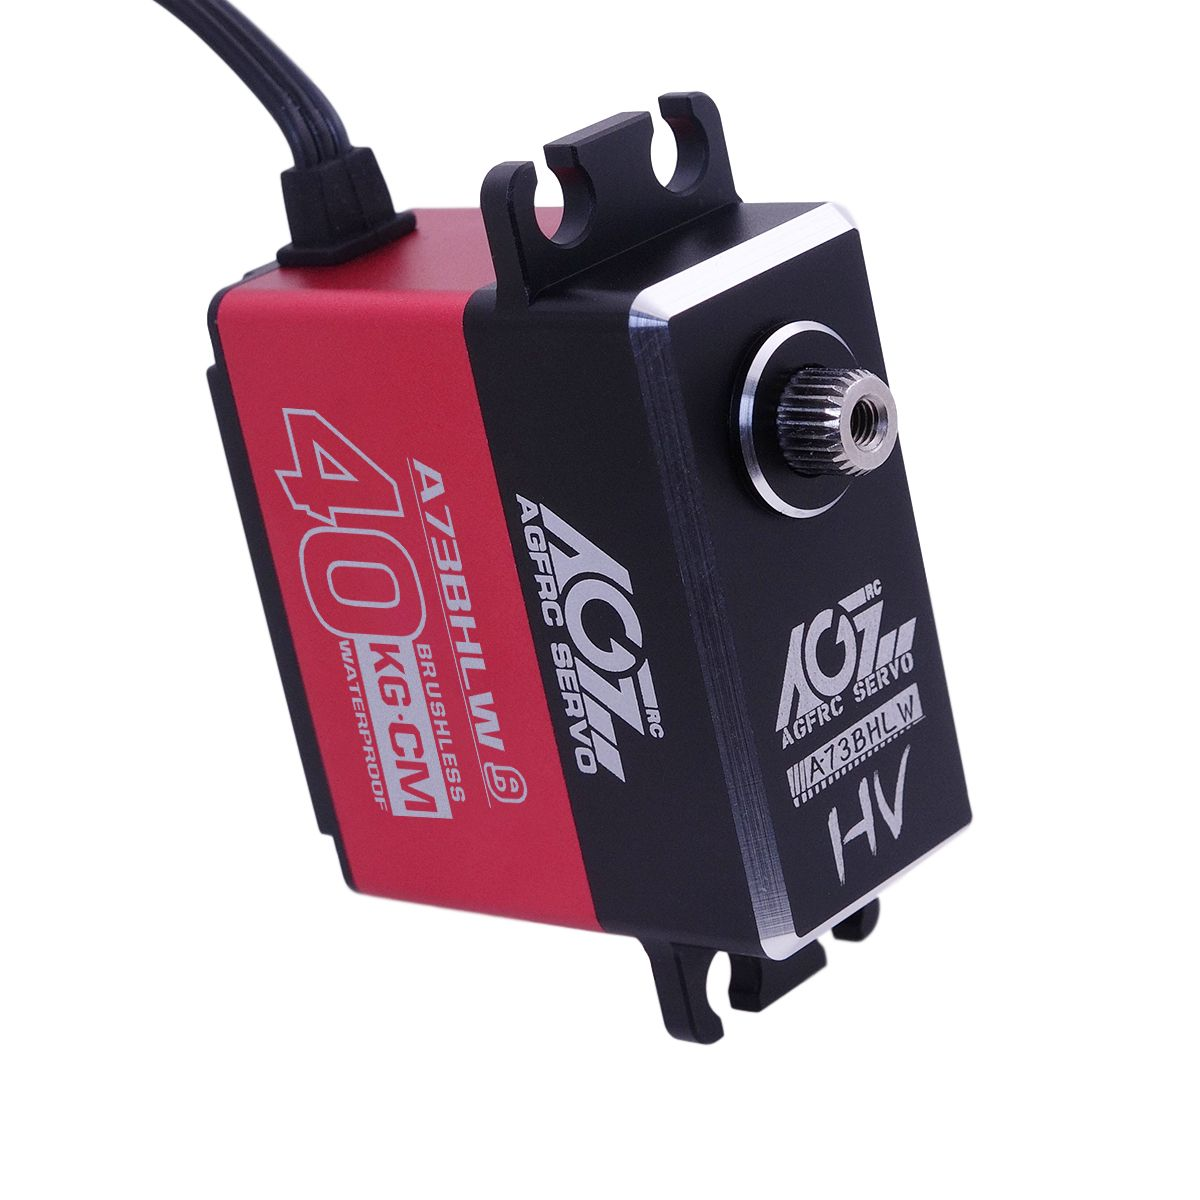 A73BHLW Good Price 35KG 7.4V Aluminum Flat Case Waterproof Brushless Servo for 1/10 RC Buggy/ Crawler/ Boat